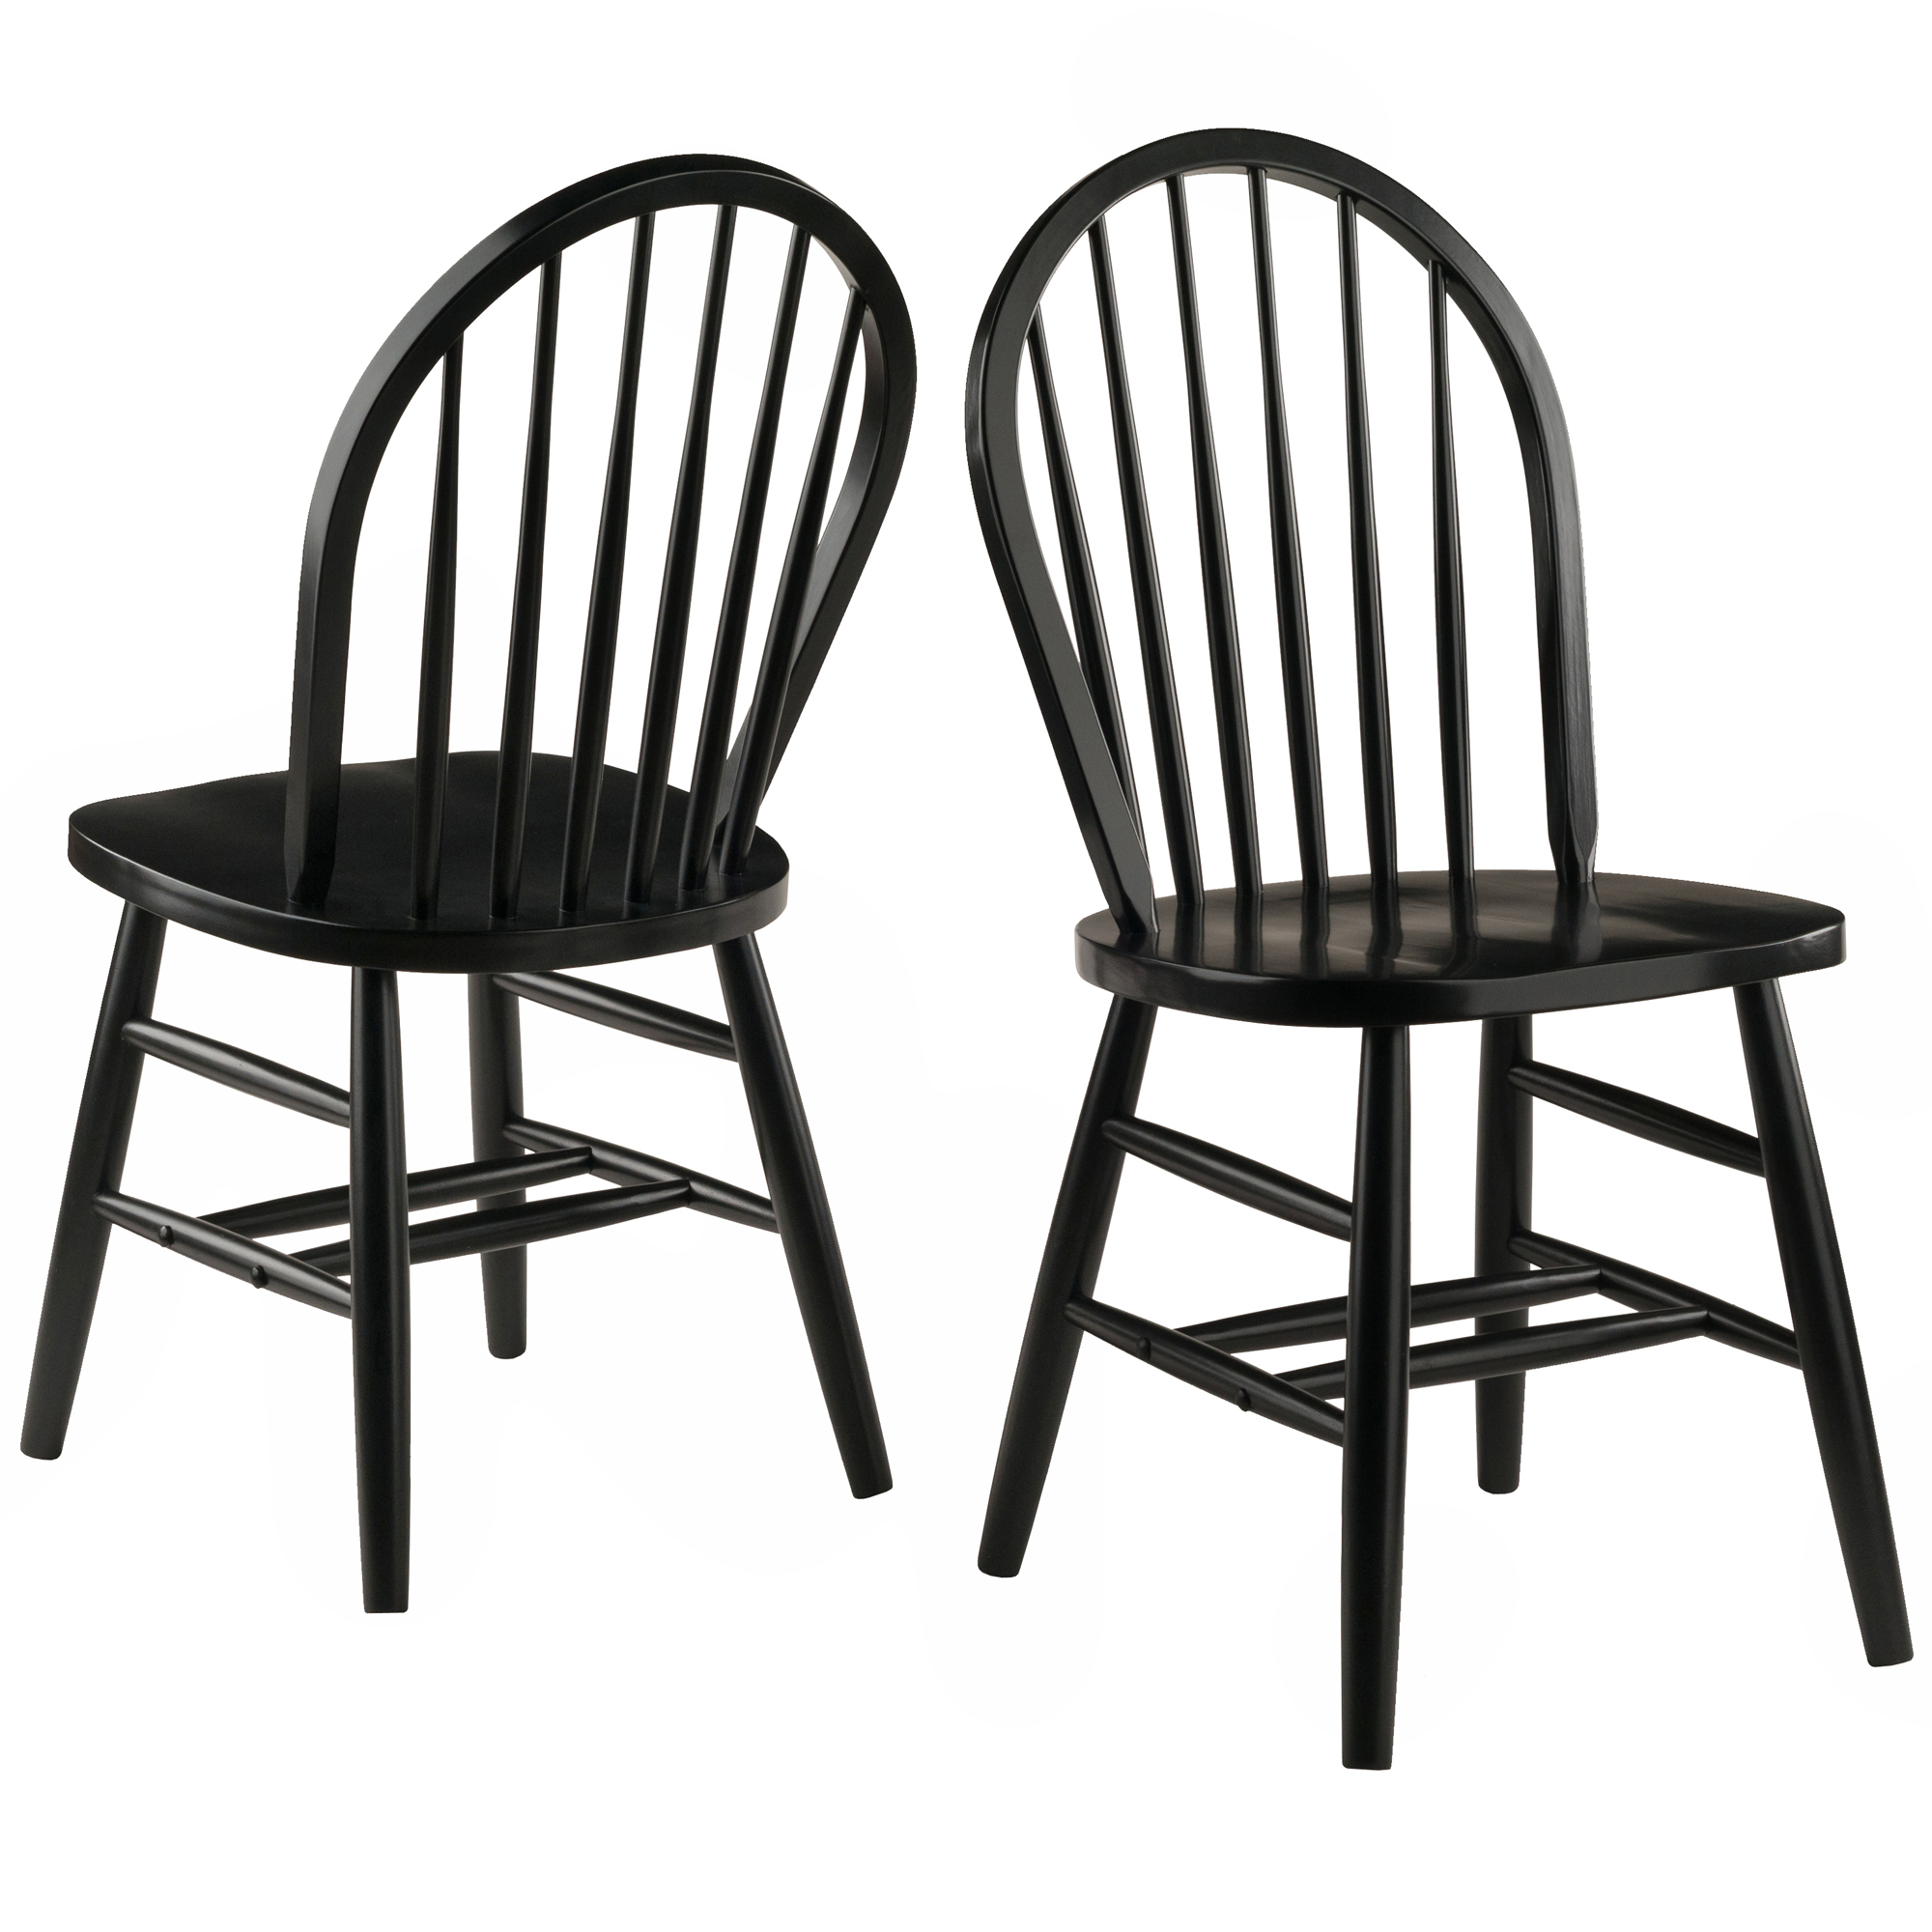 Black Windsor Chair Winsome Wood Windsor Chair 2 Piece Chair Set Rta Black